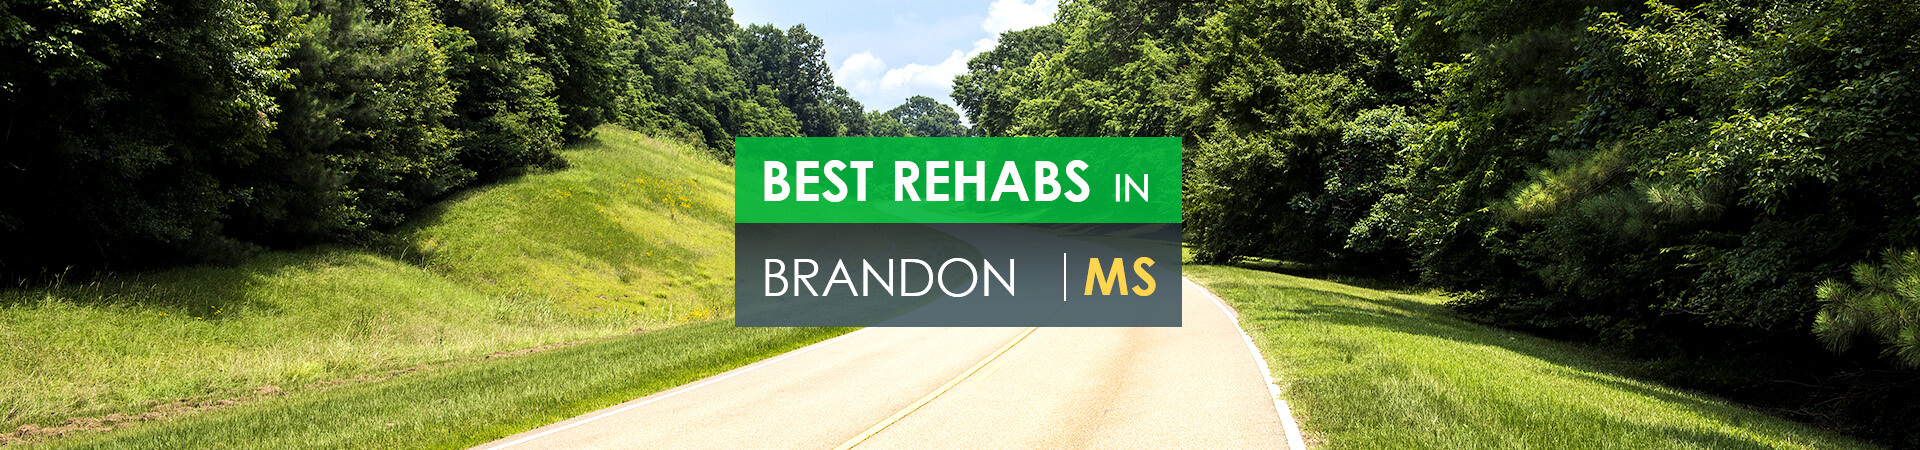 Best rehabs in Brandon, MS